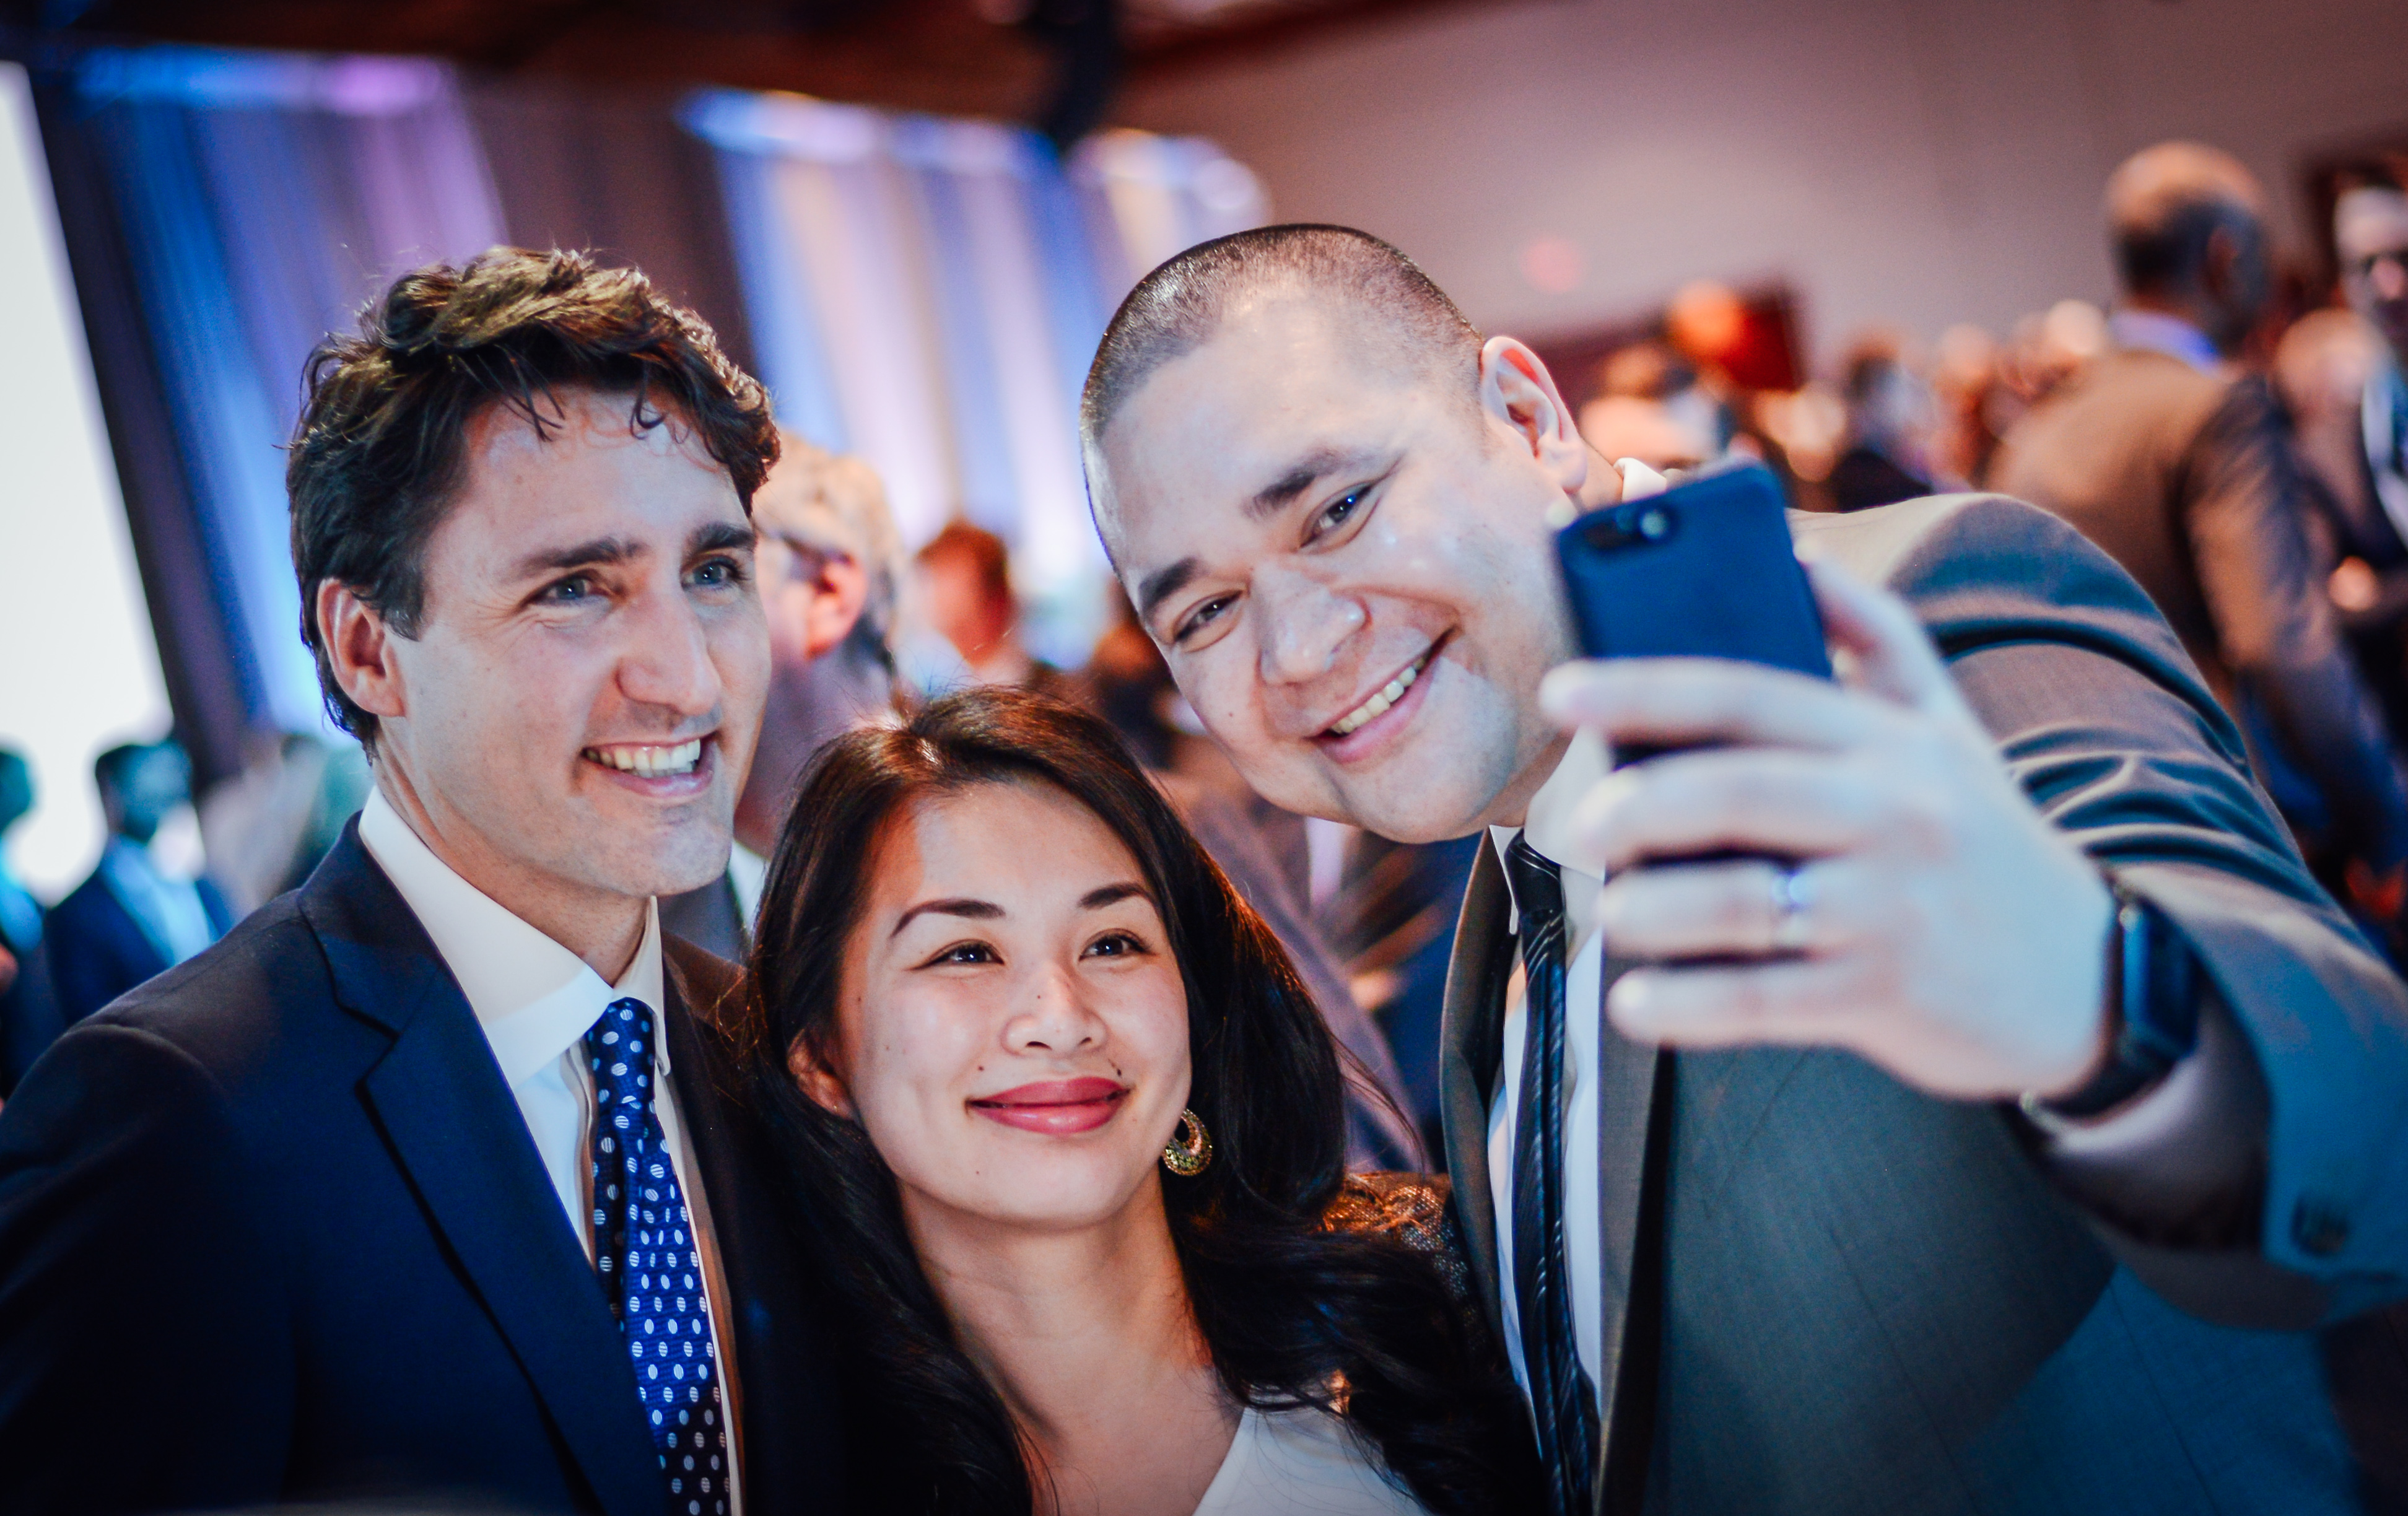 Lafontaine takes a selfie with his wife Thu Uyen and Prime Minister Justin Trudeau at the 2017 Public Policy Forum Testimonial Dinner and Awards. Photo courtesy of the Public Policy Forum